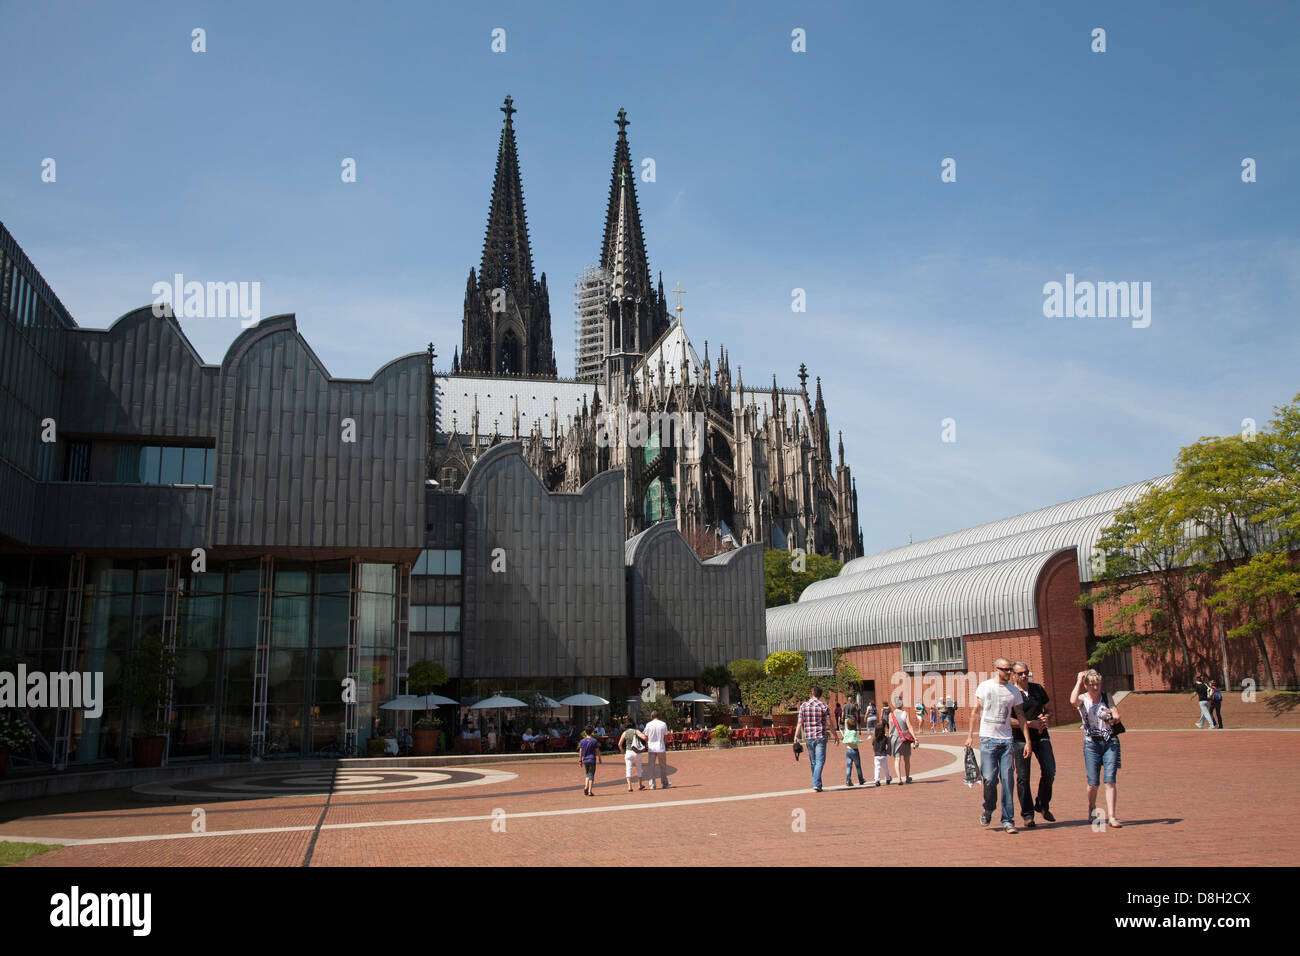 Museum Ludwig and Cathedral, Heinrich-Böll-Platz, Cologne, Germany - Stock Image